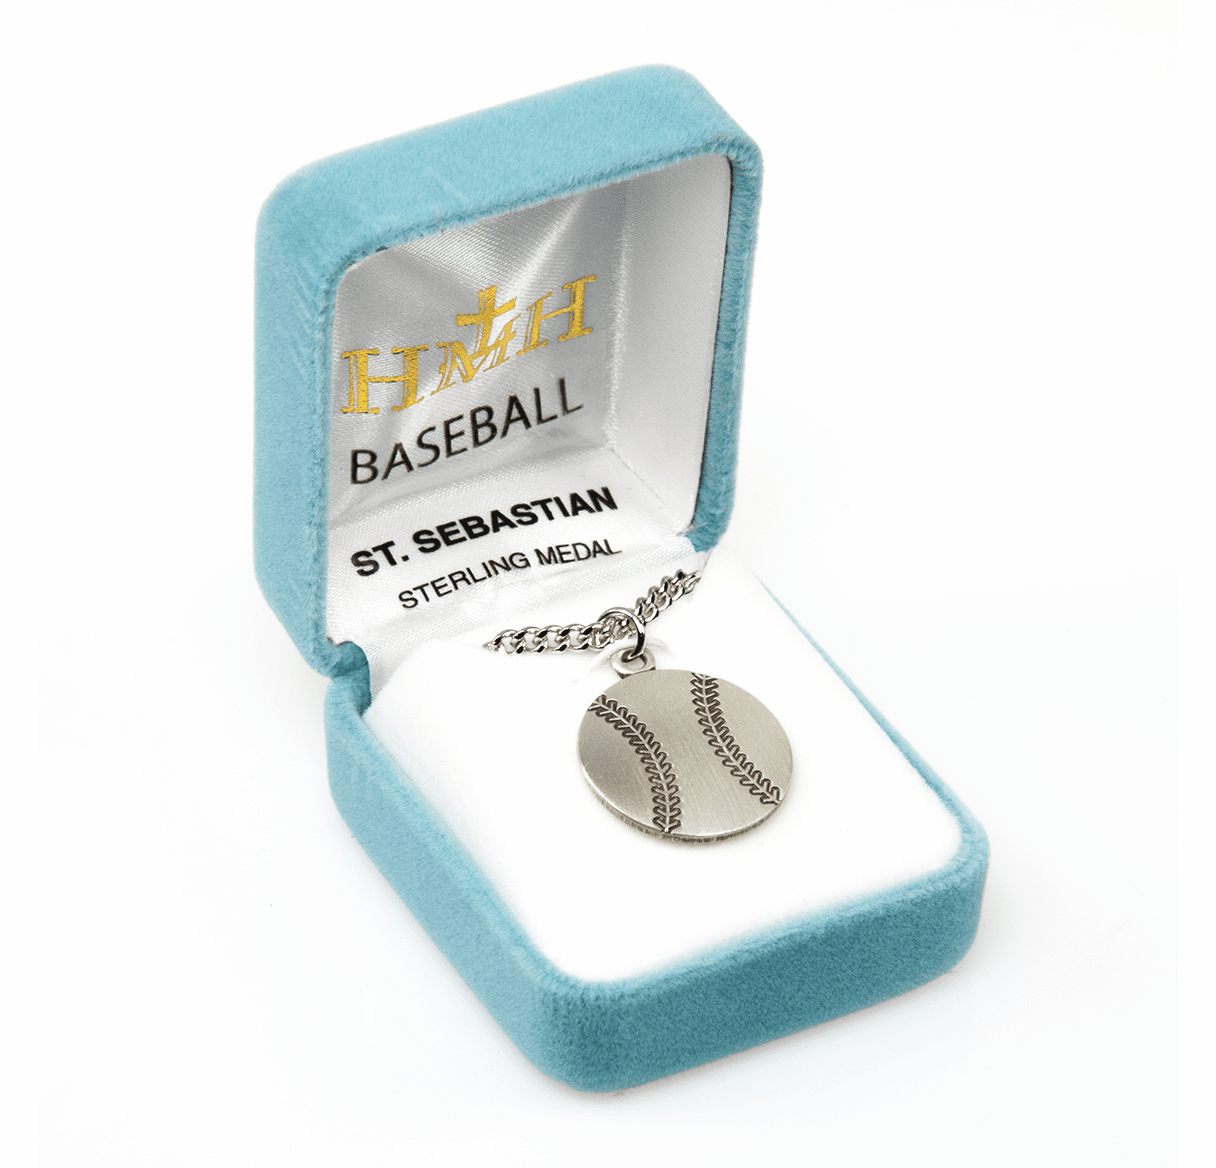 HMH Religious Athlete Sports Medal Jewelry